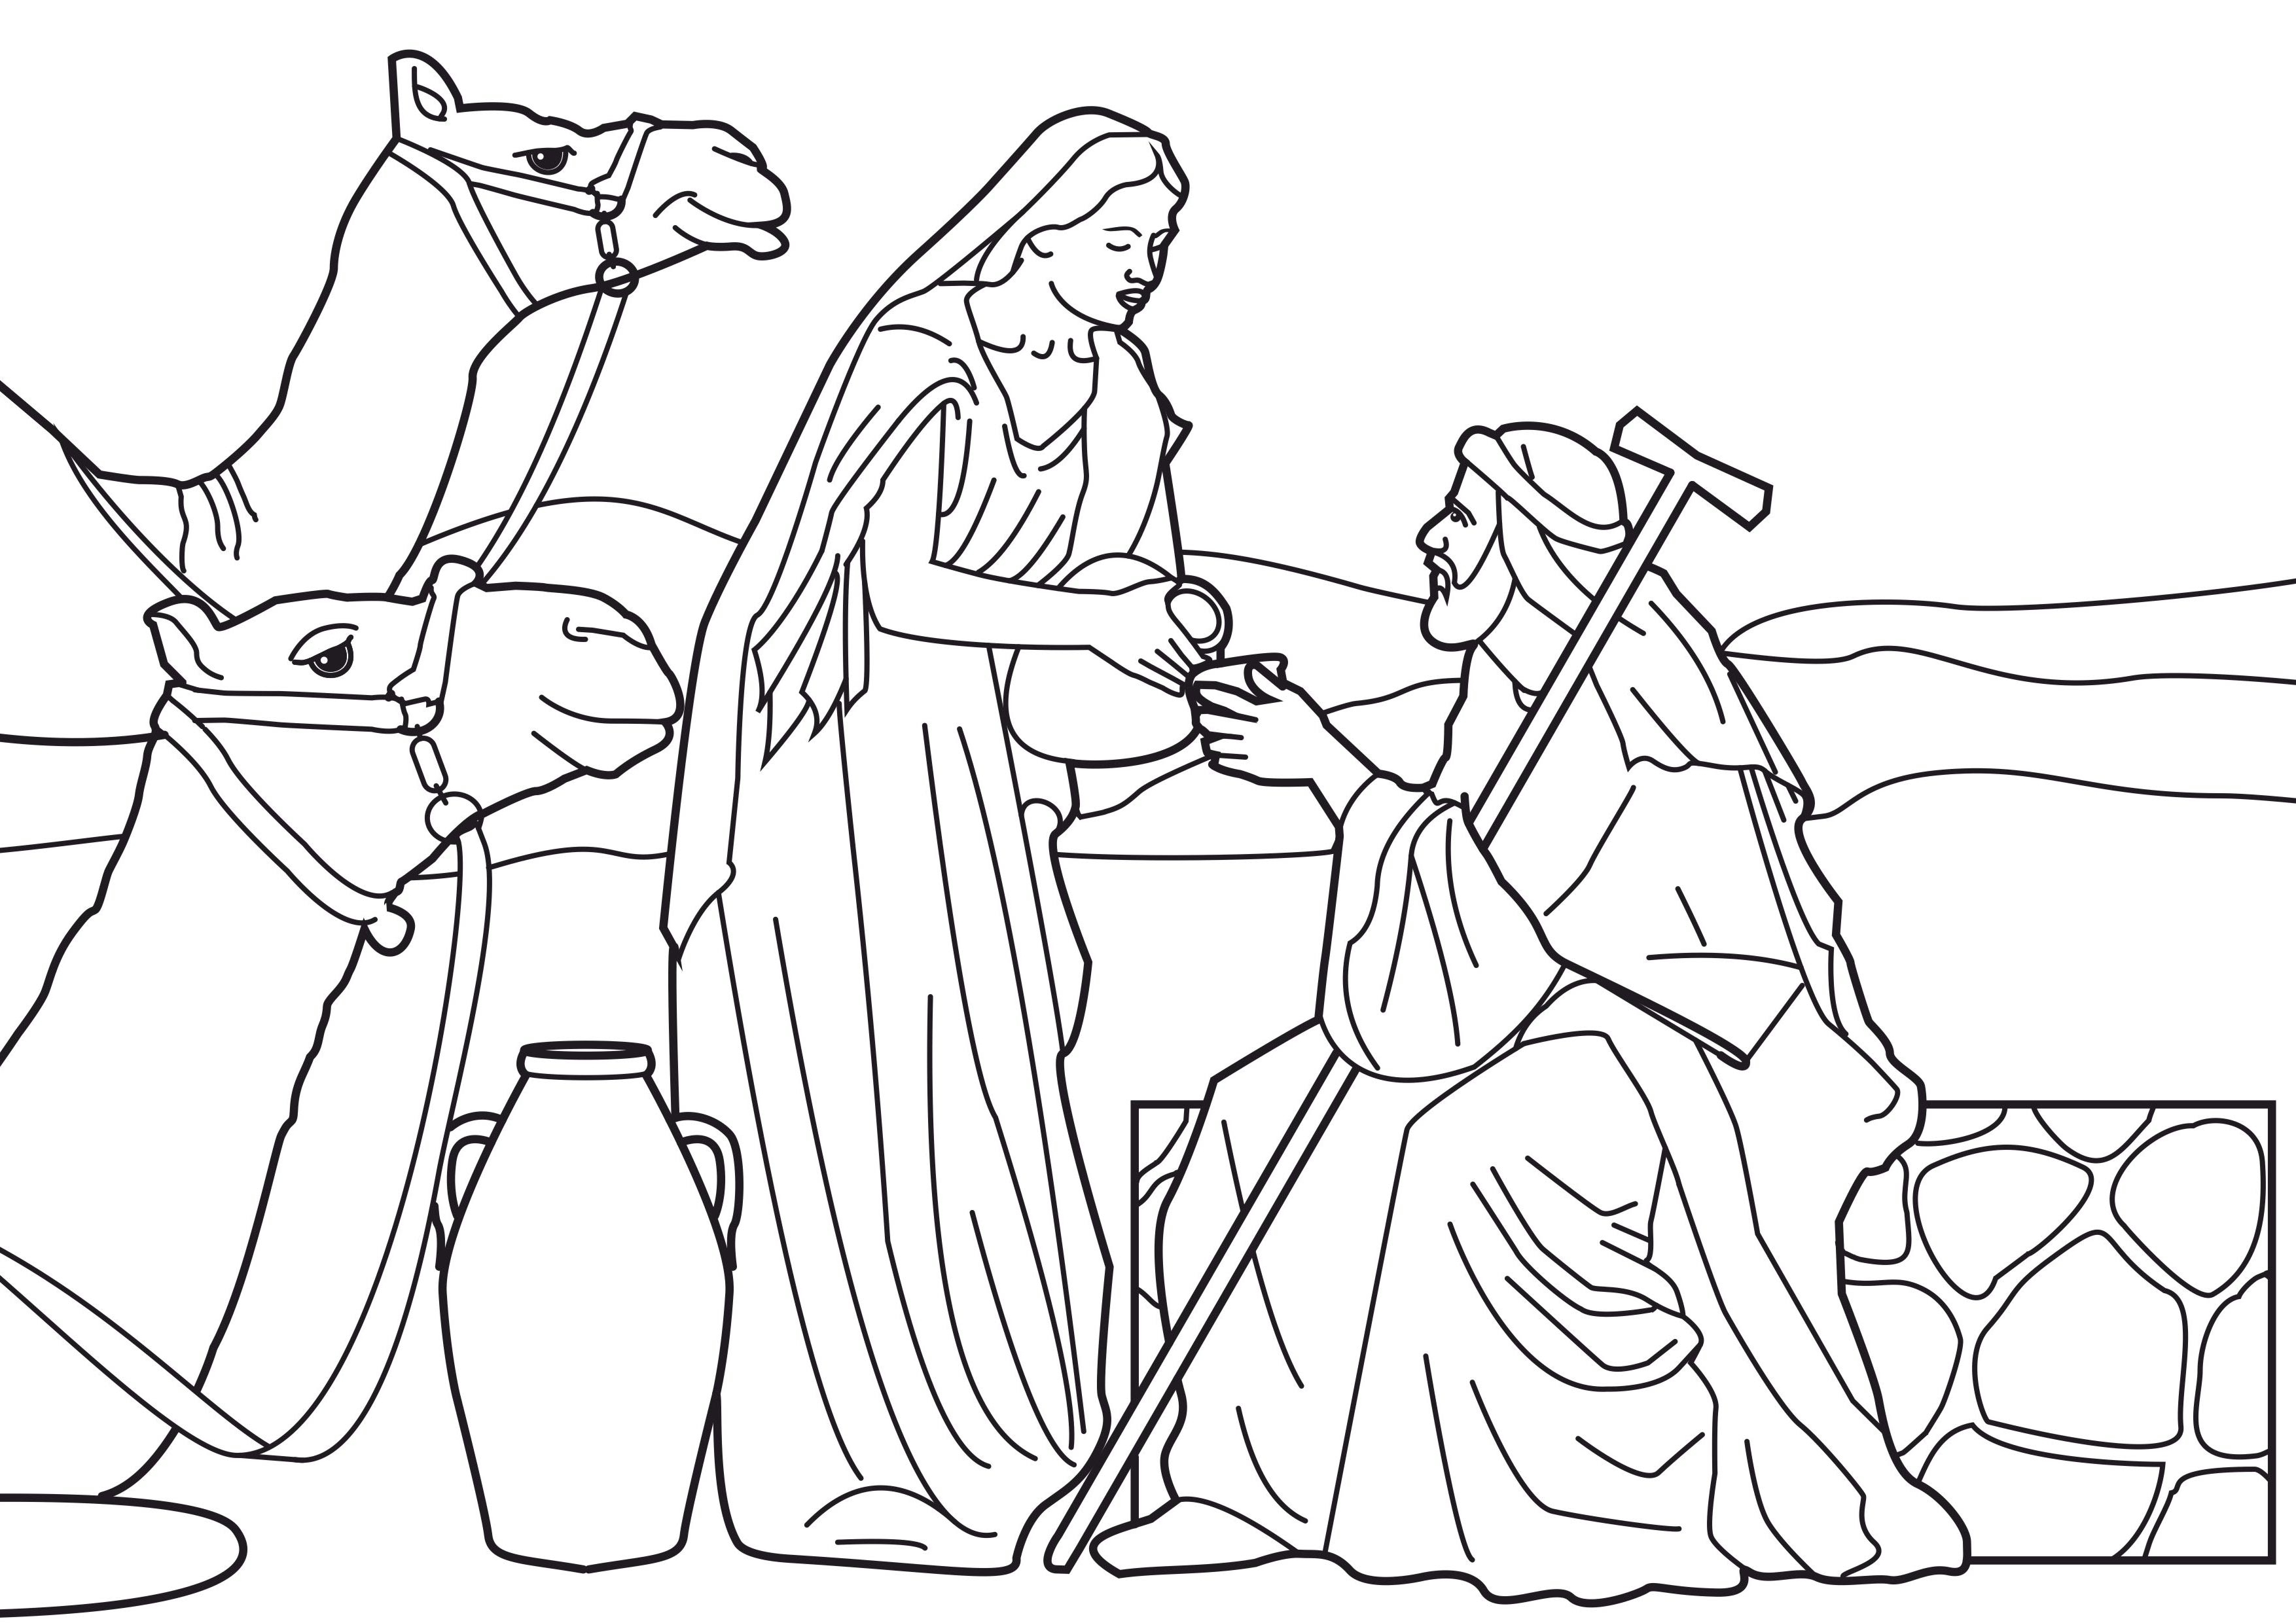 Praise and Worship Coloring Pages - Awesome isaac and Rebekah Coloring Pages Design Collection